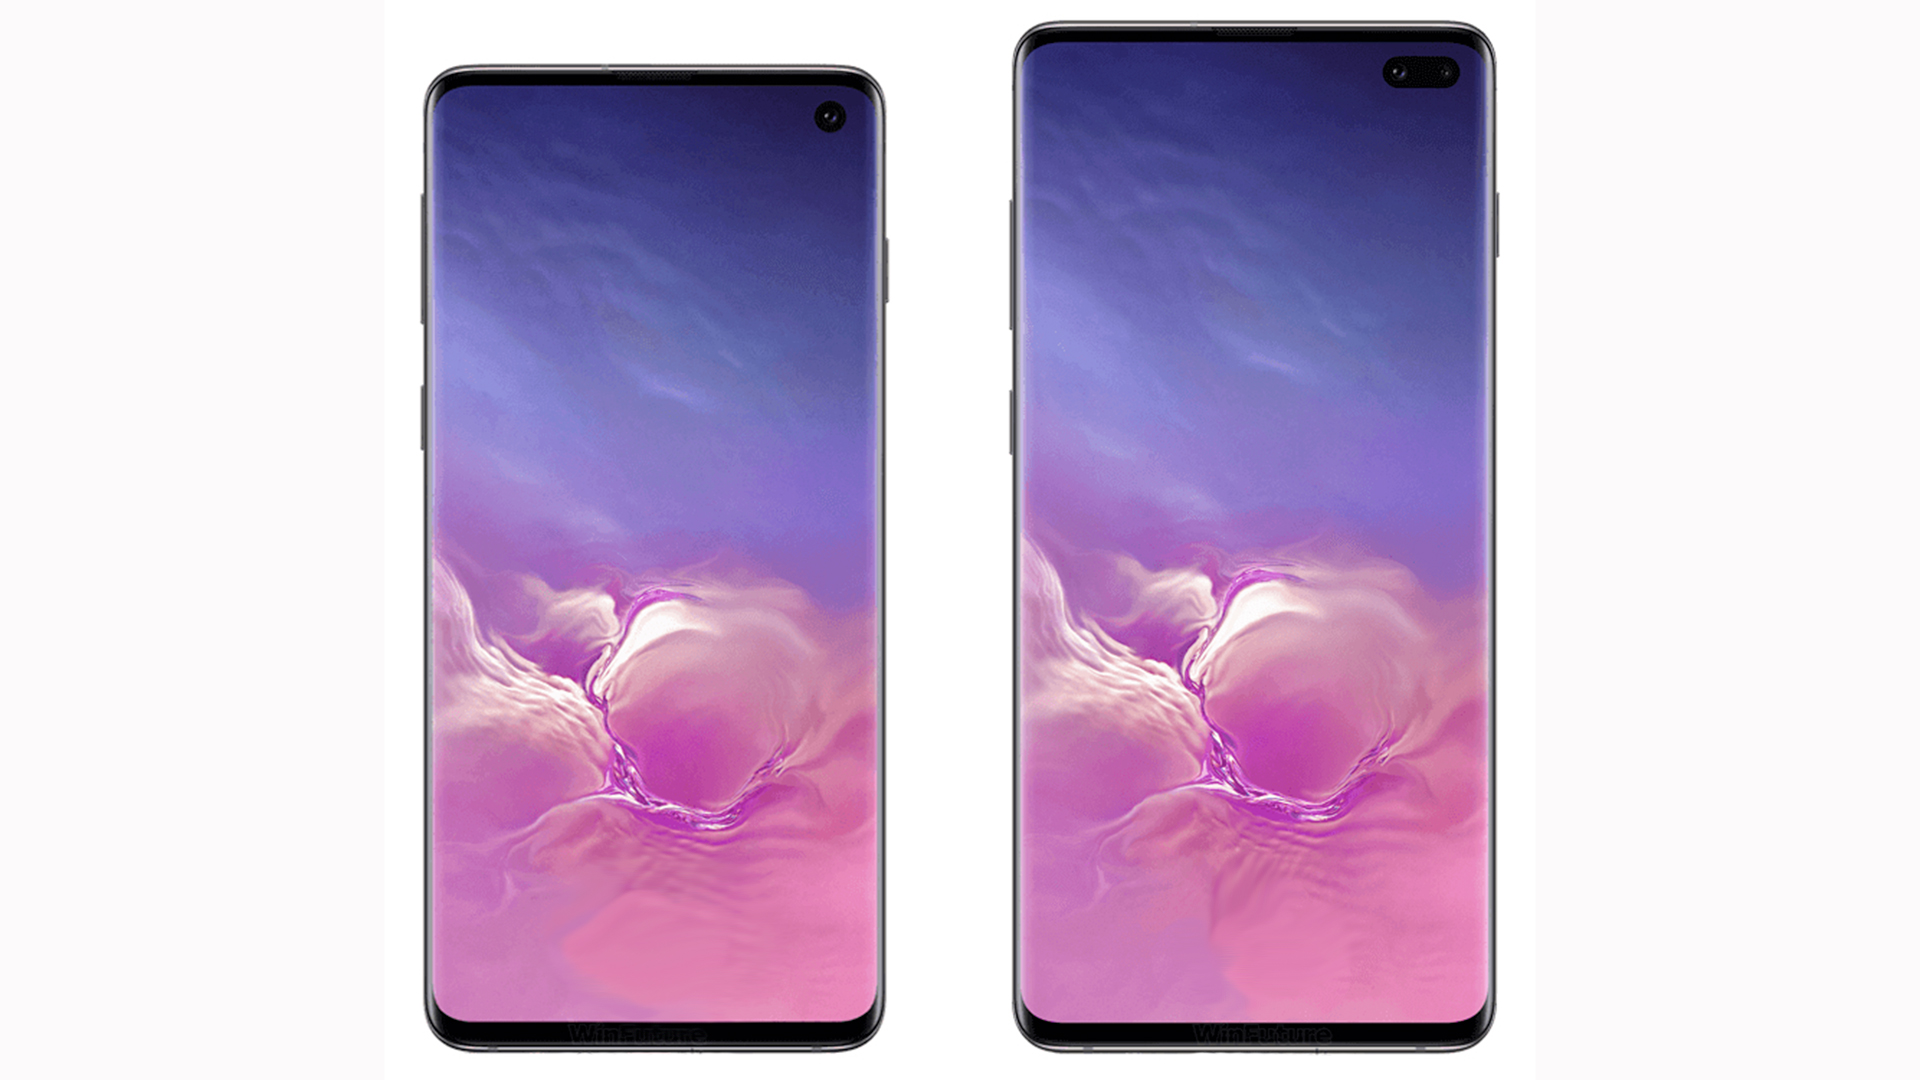 Samsung Galaxy S10 launch colors revealed